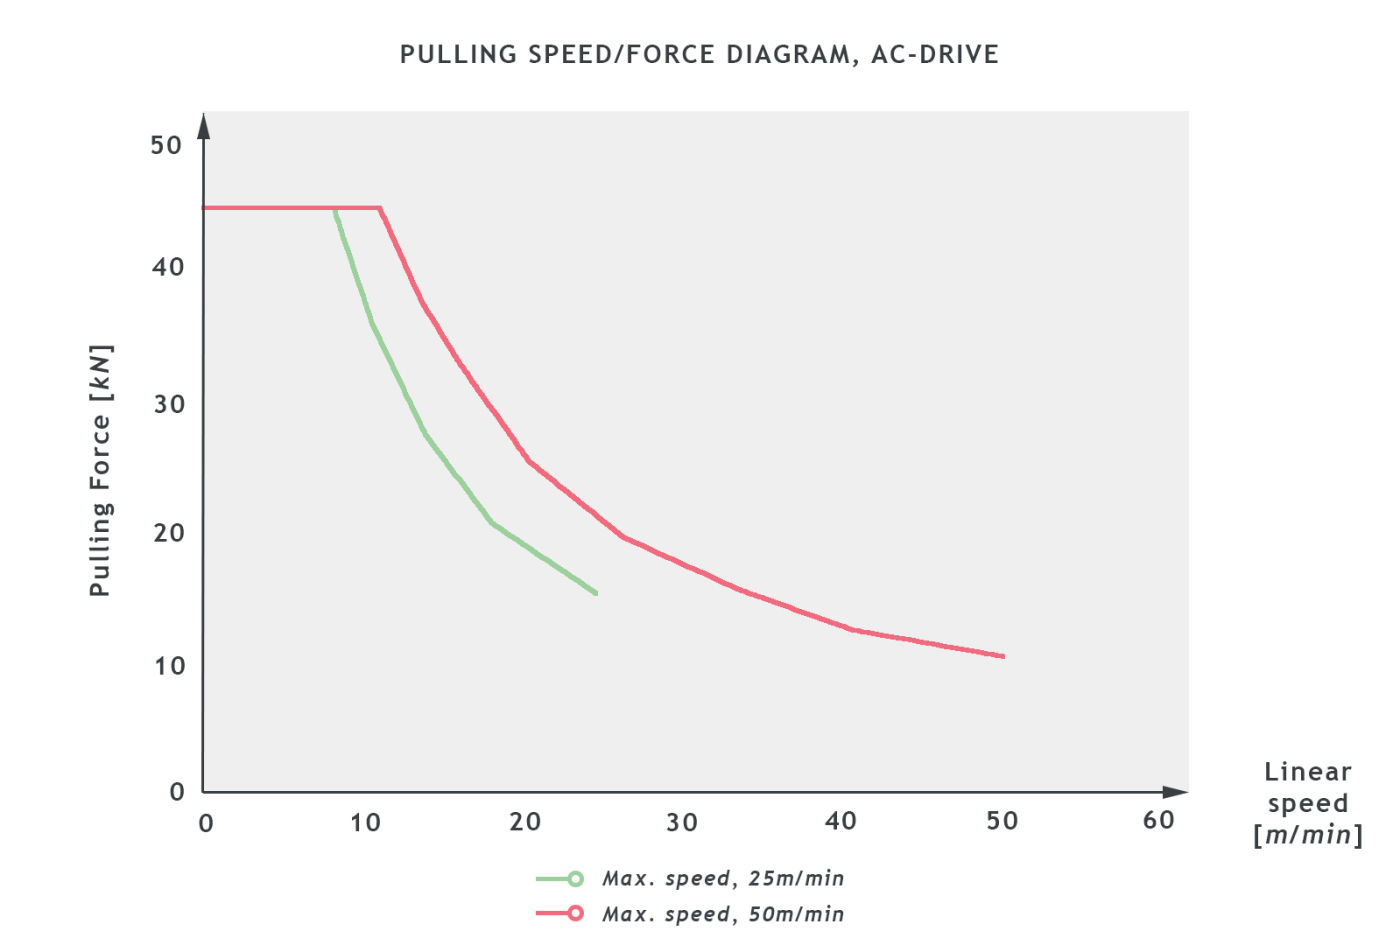 BCA30_SB0601024_PULLING_SPEED_graph1.jpg